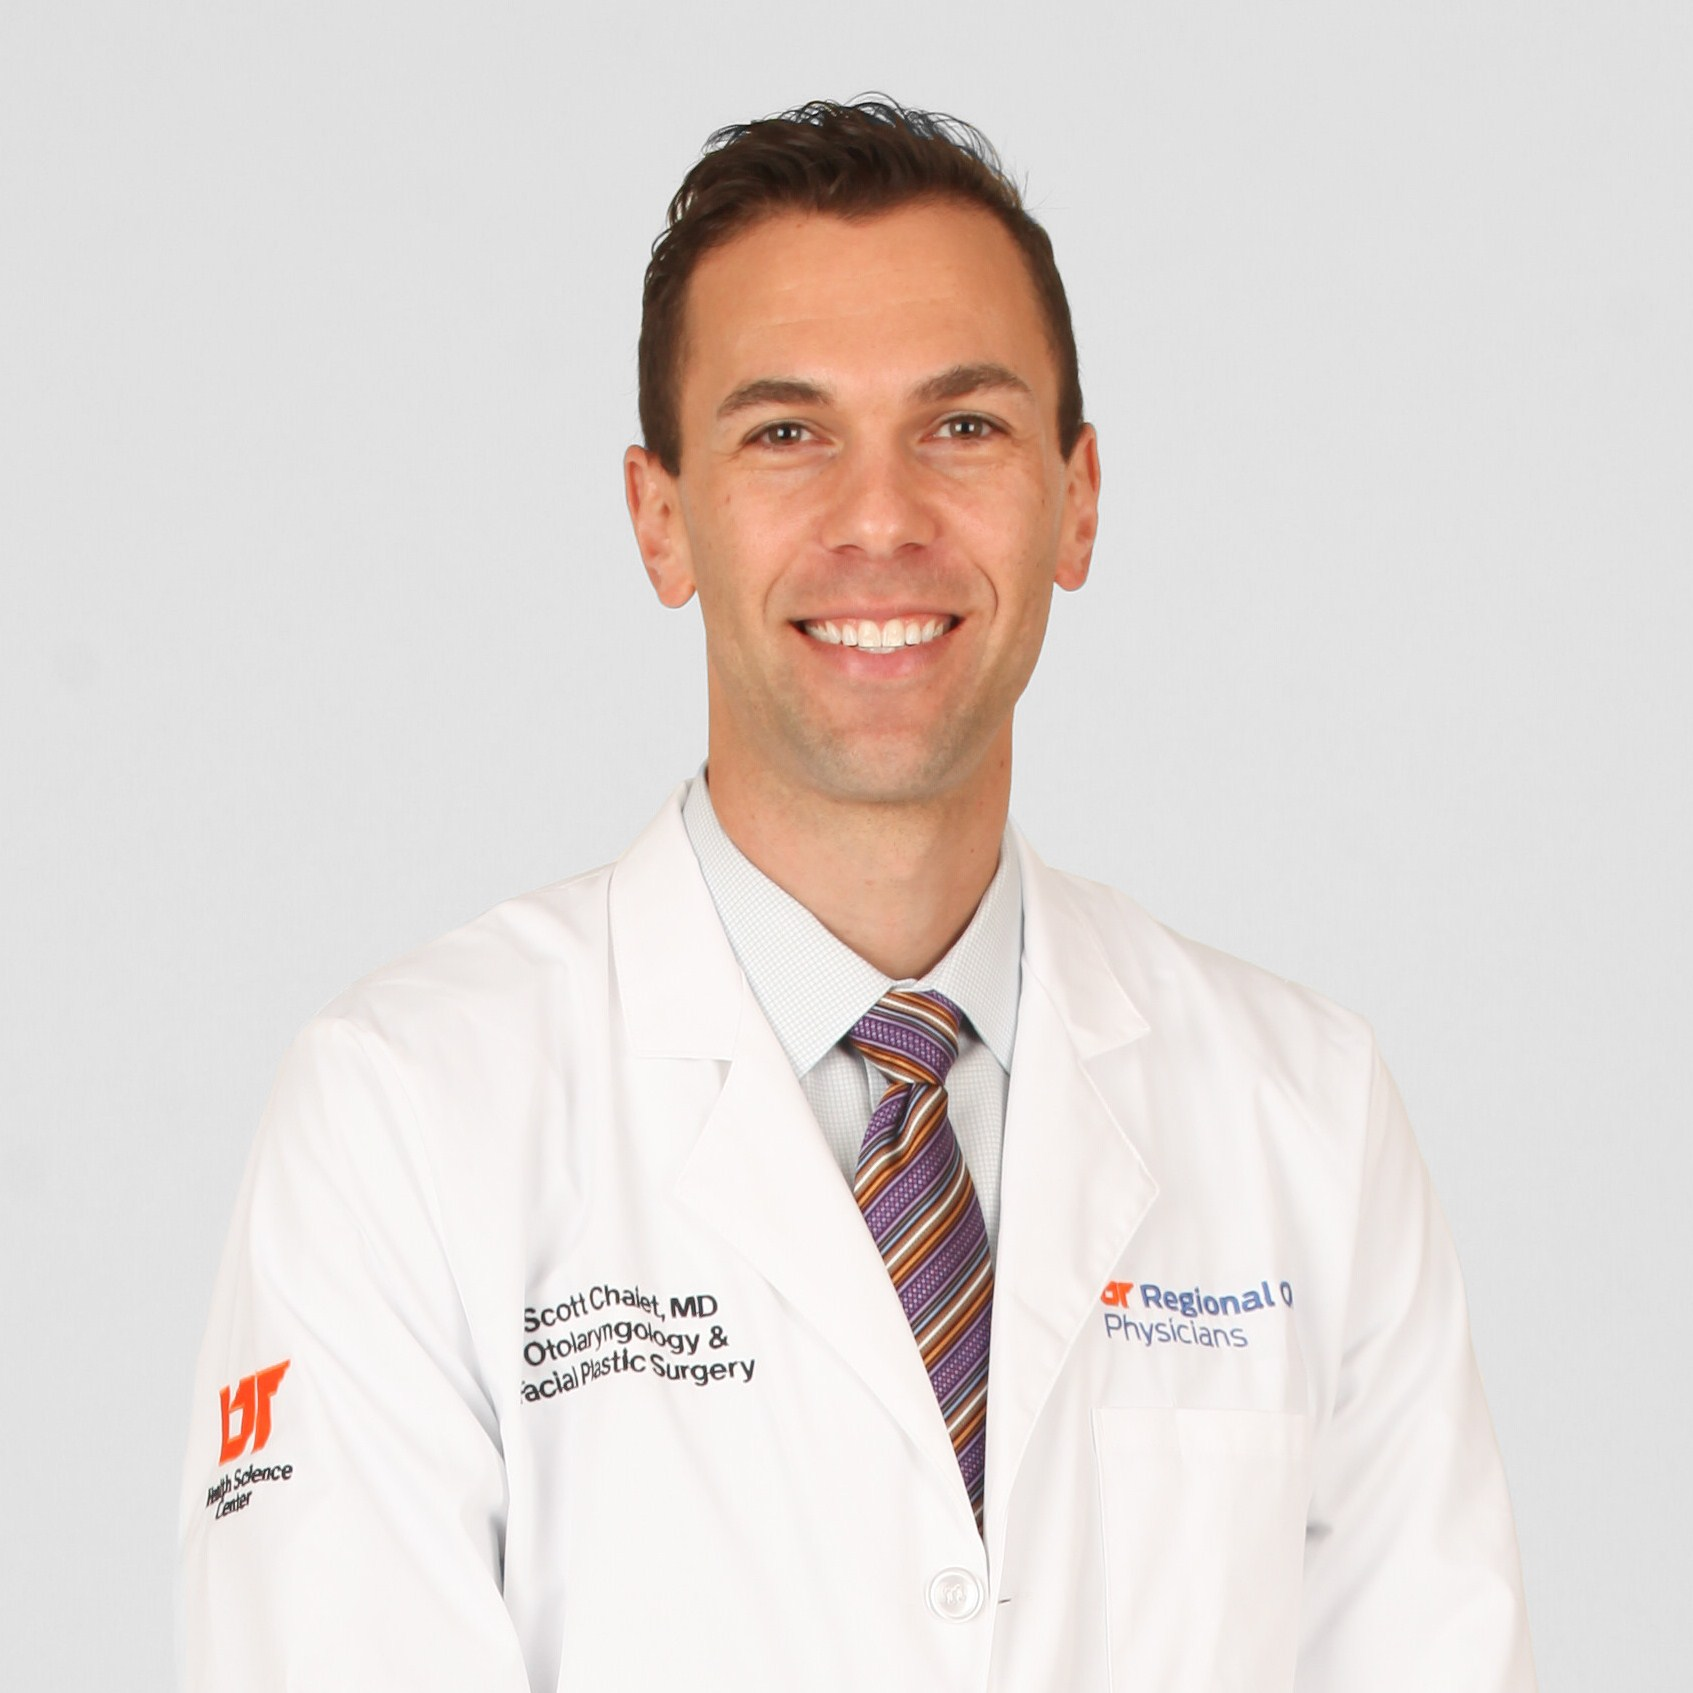 Scott Chaiet, MD, MBA, MD